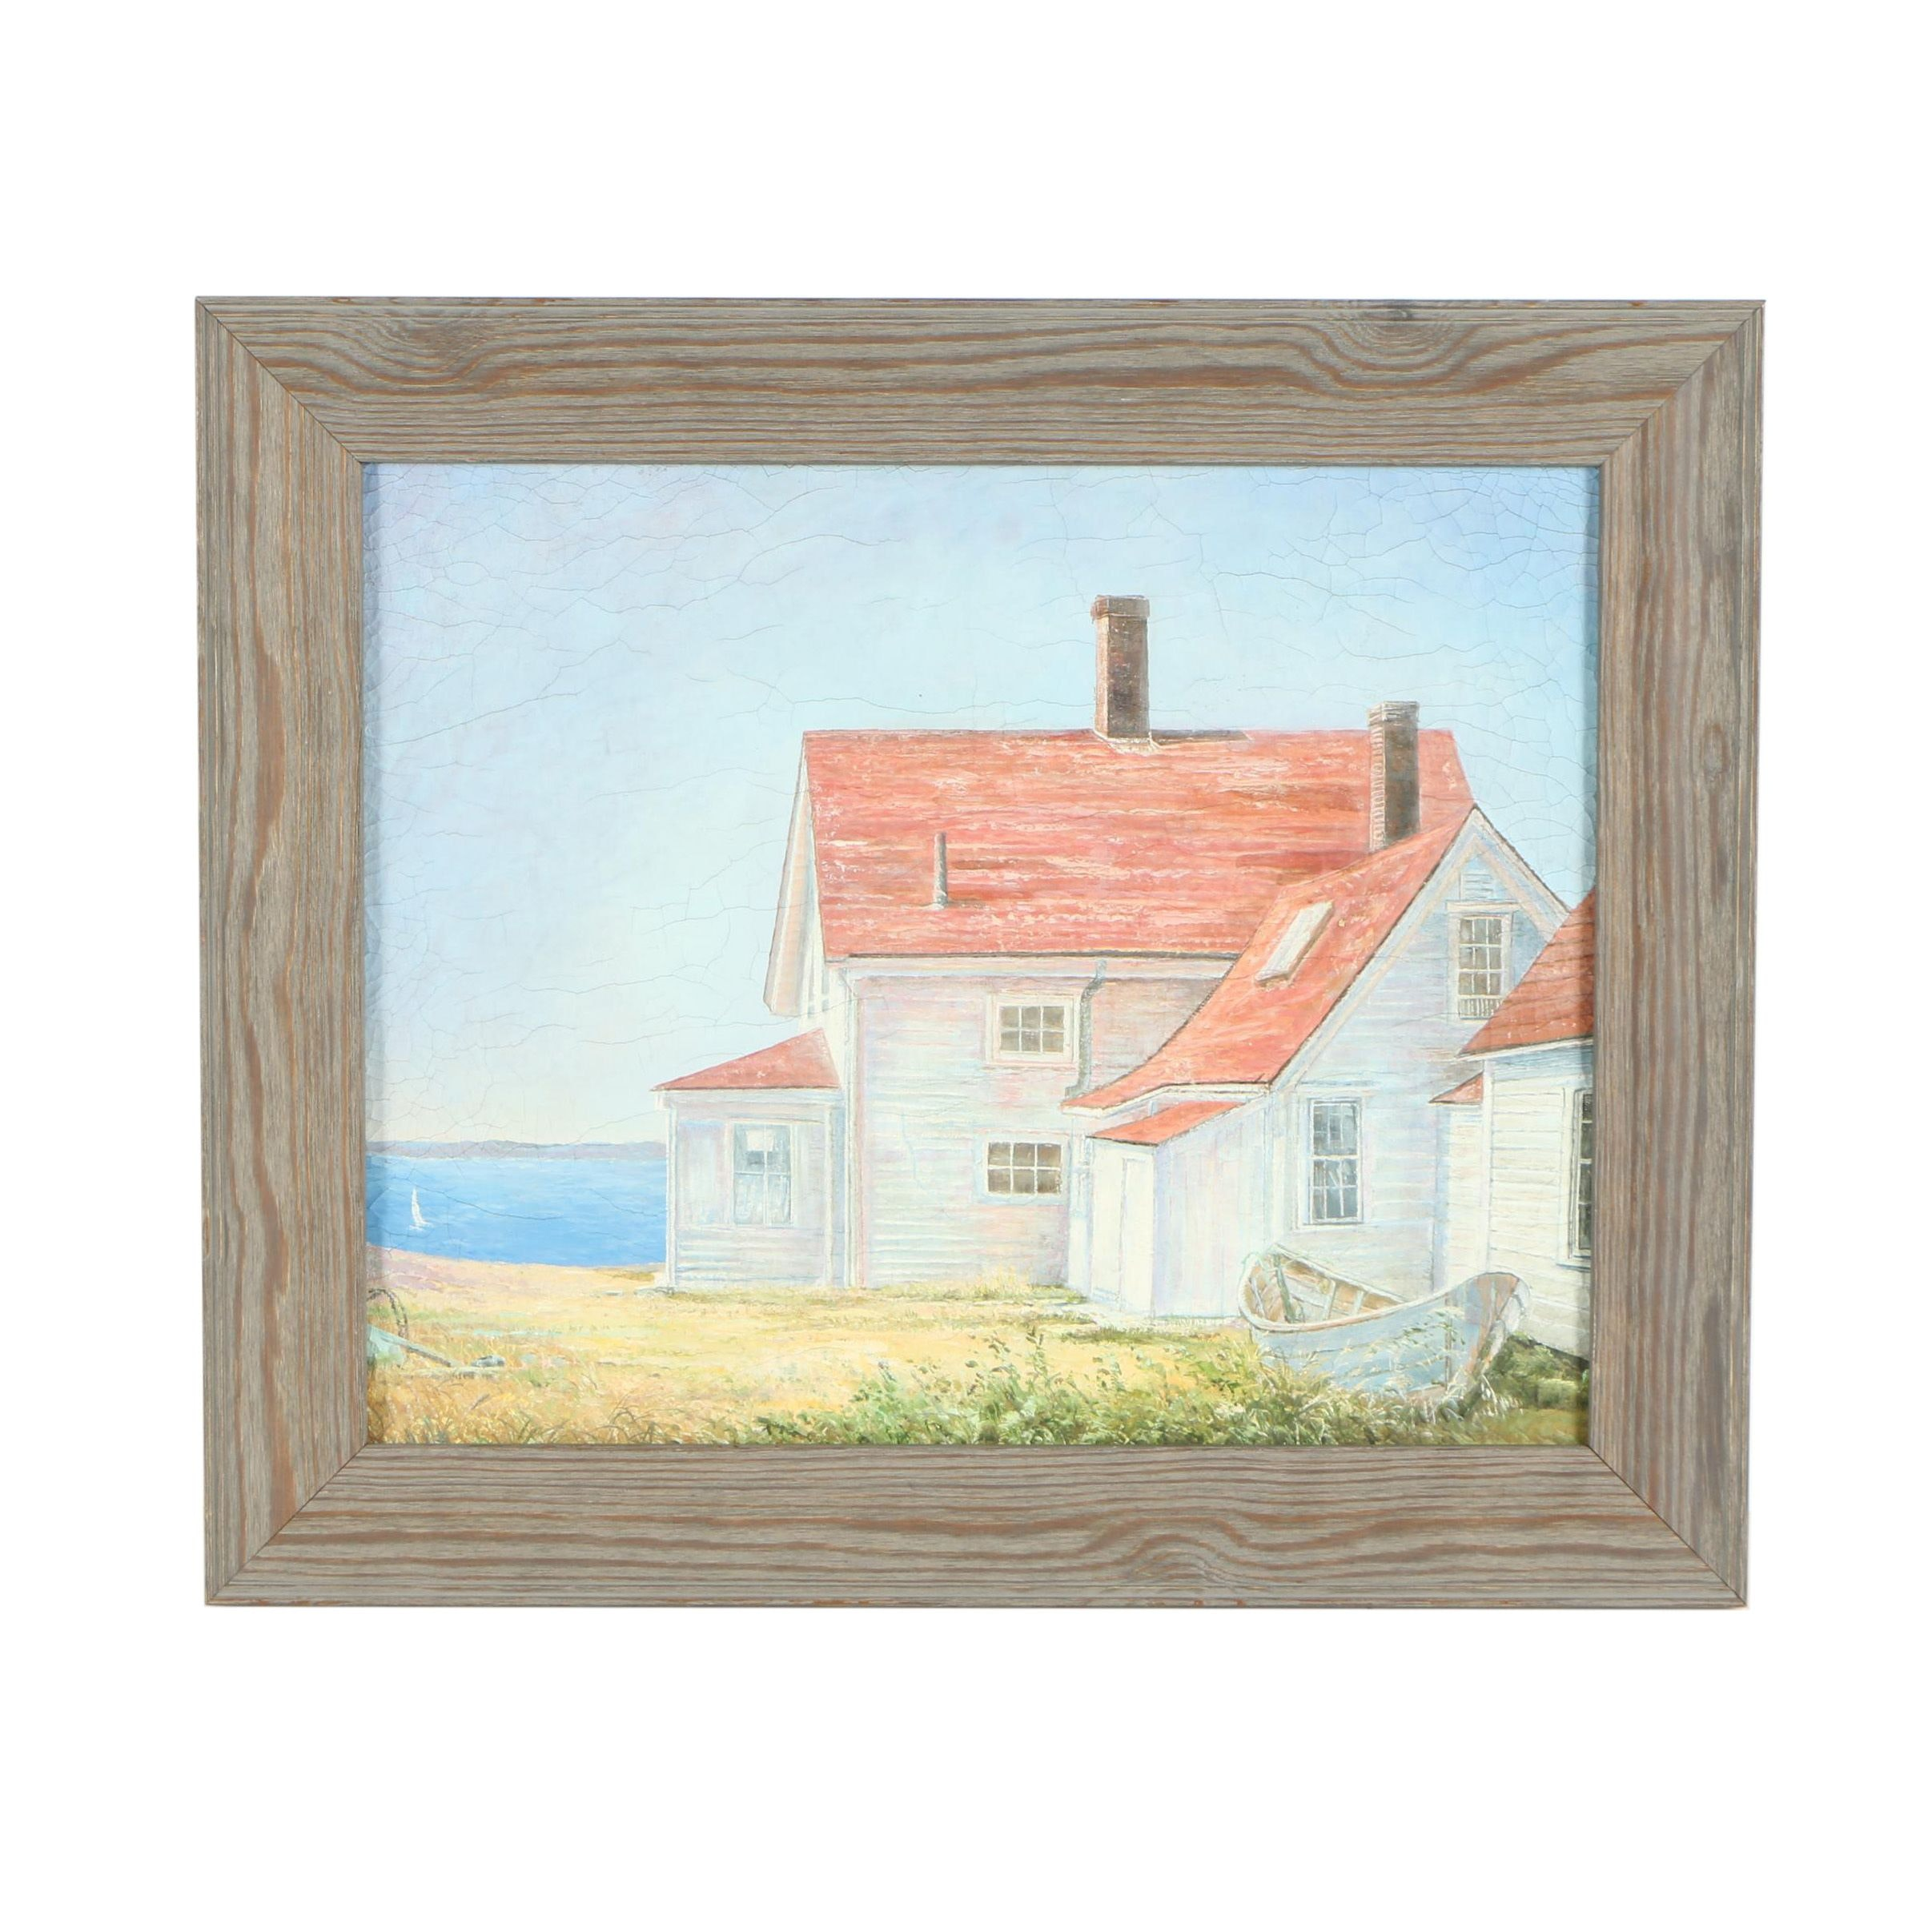 Oil Painting of a Waterfront Home